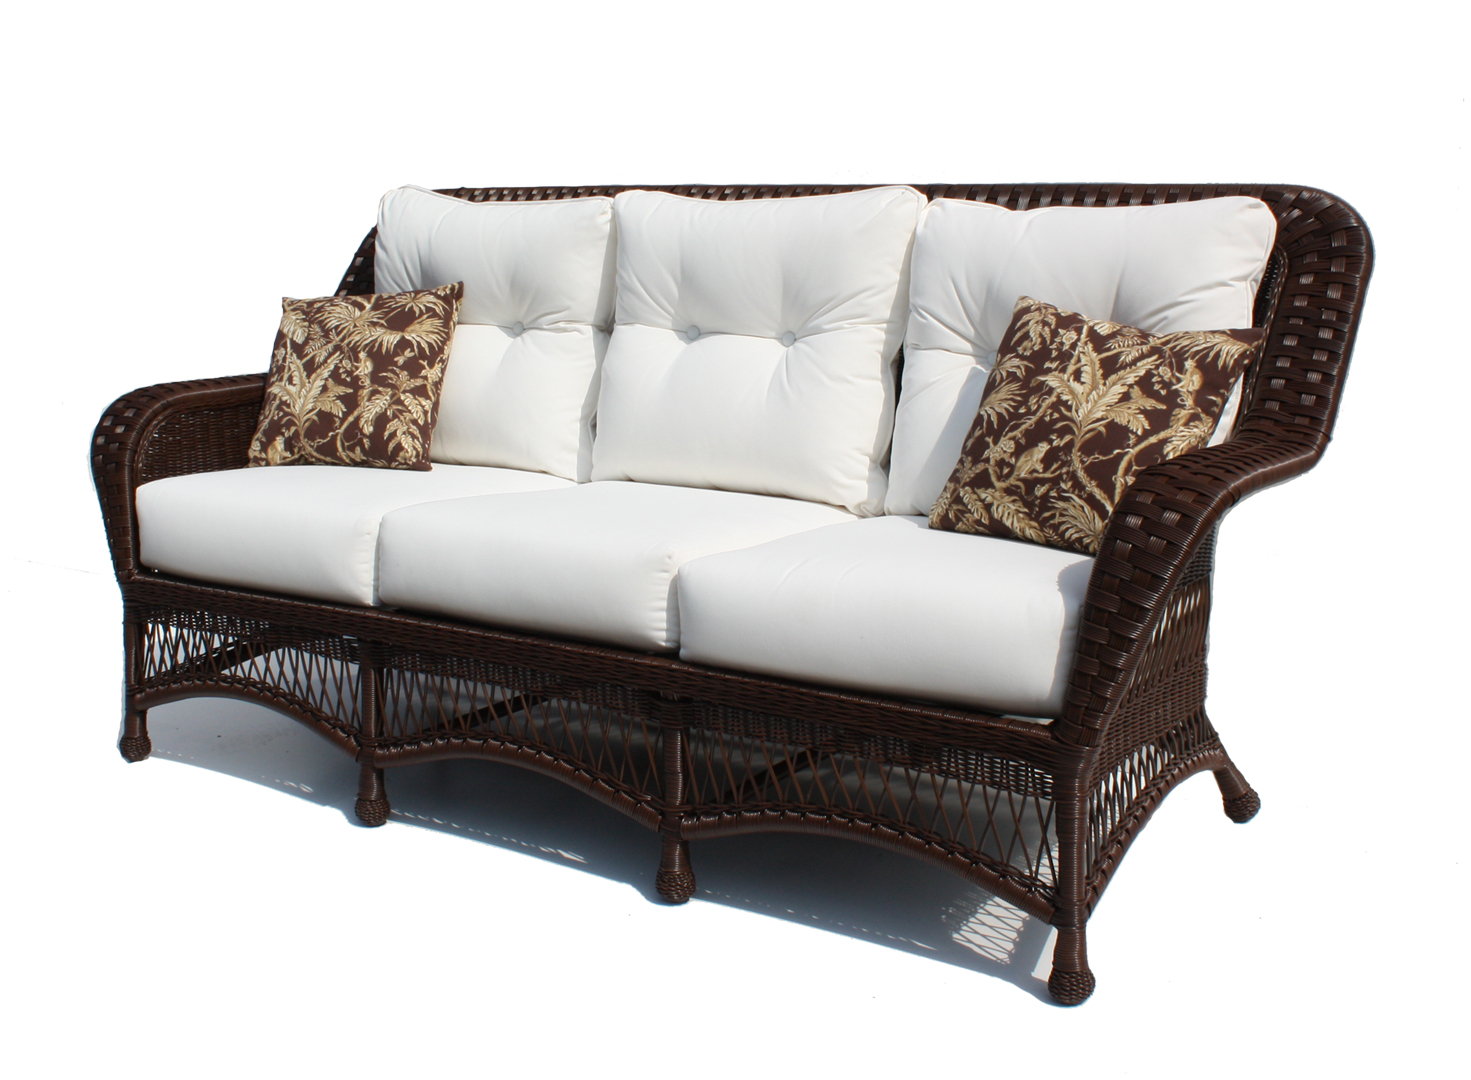 Outdoor Wicker Sofa Princeton Shown In Brown Wicker Paradise